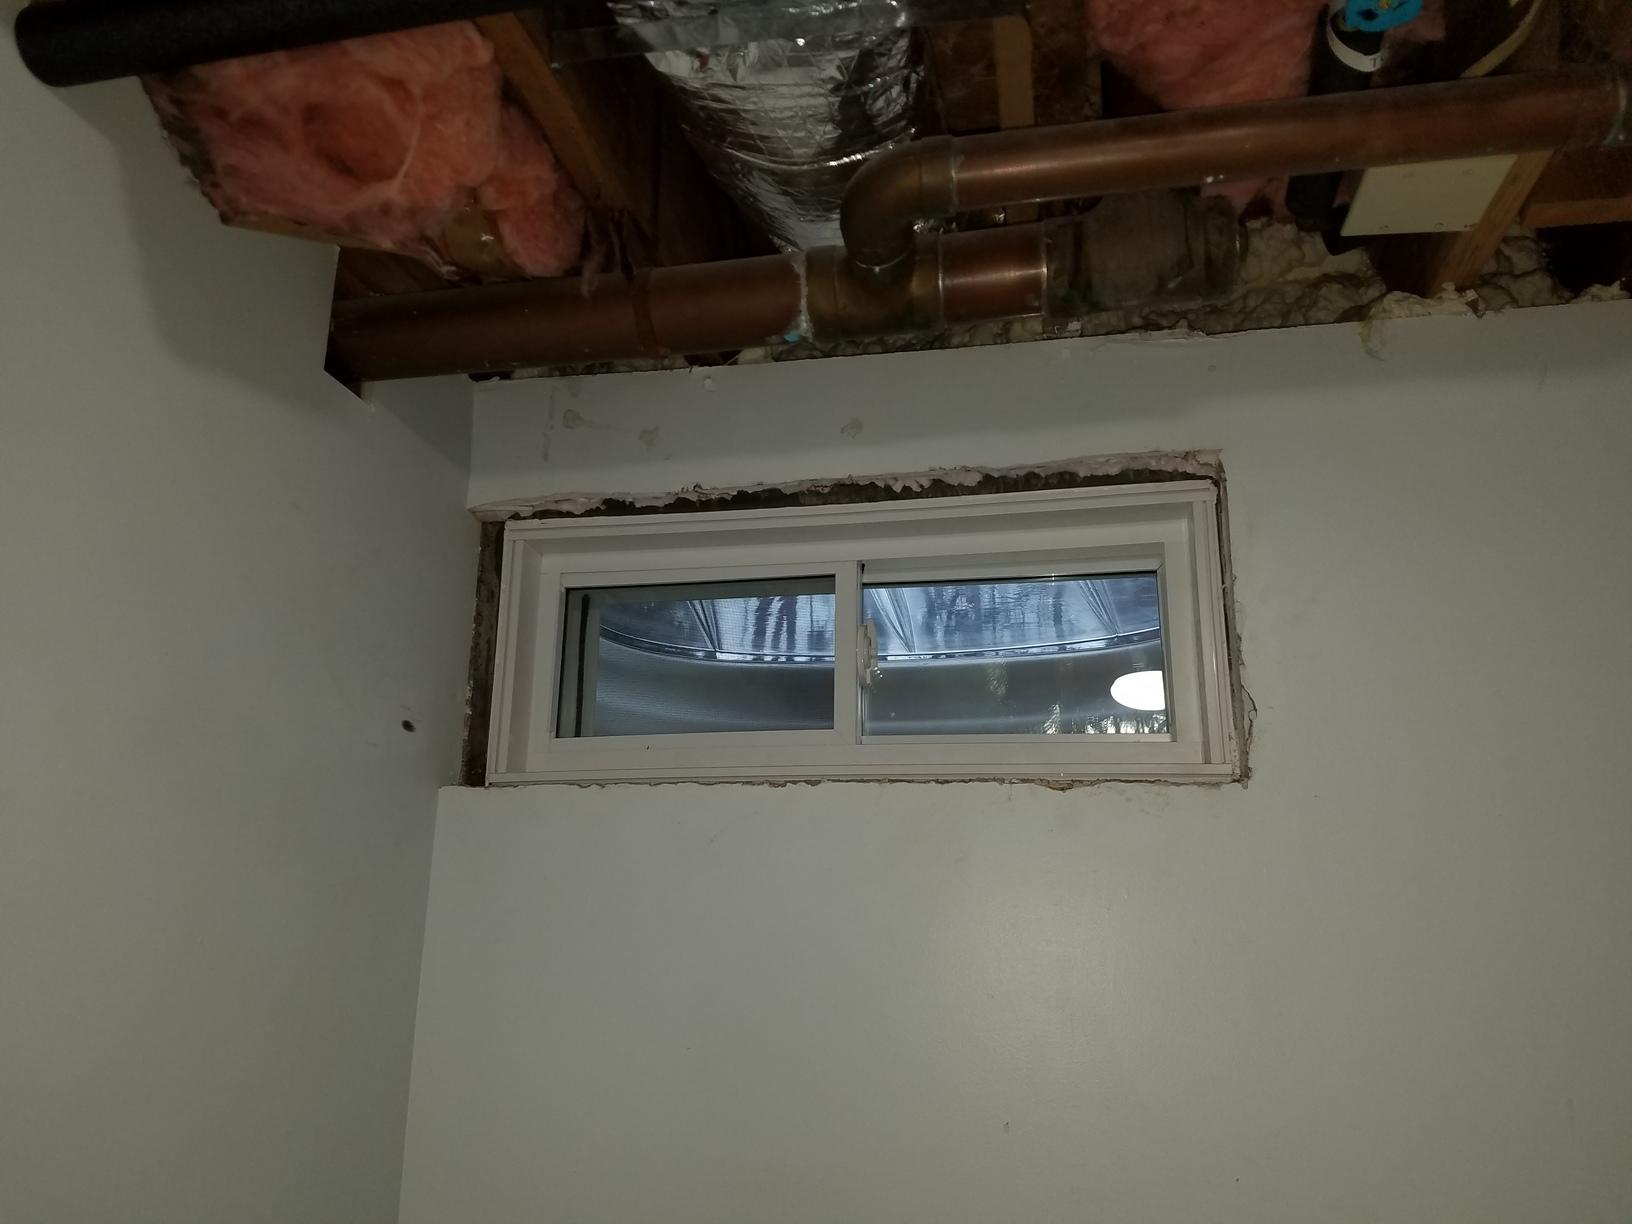 Replacing leaky Basement Windows in Colebrook, CT - After Photo